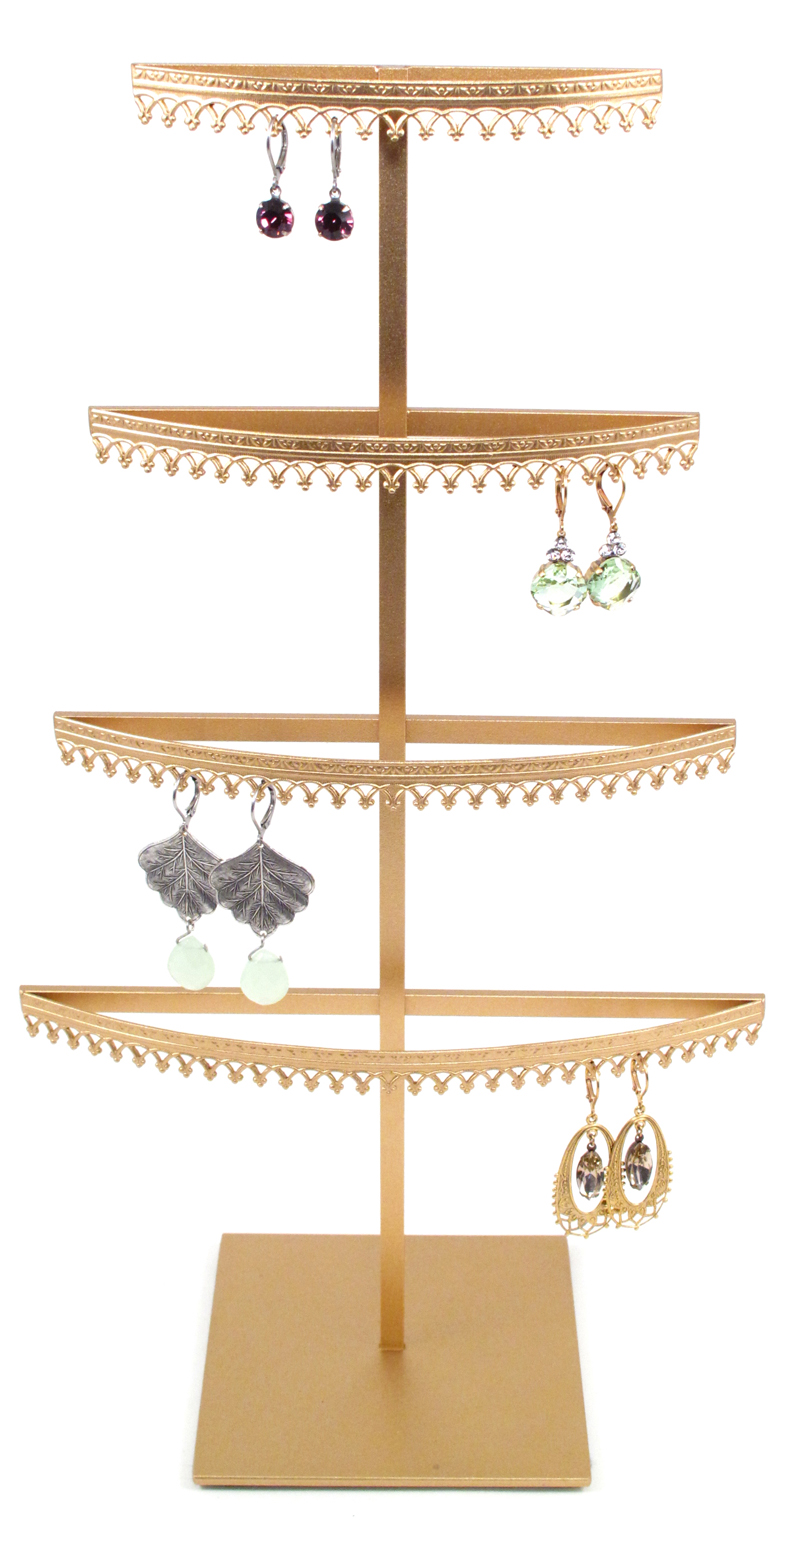 Stand#3 - Four tier earring display stand, Crown molding.